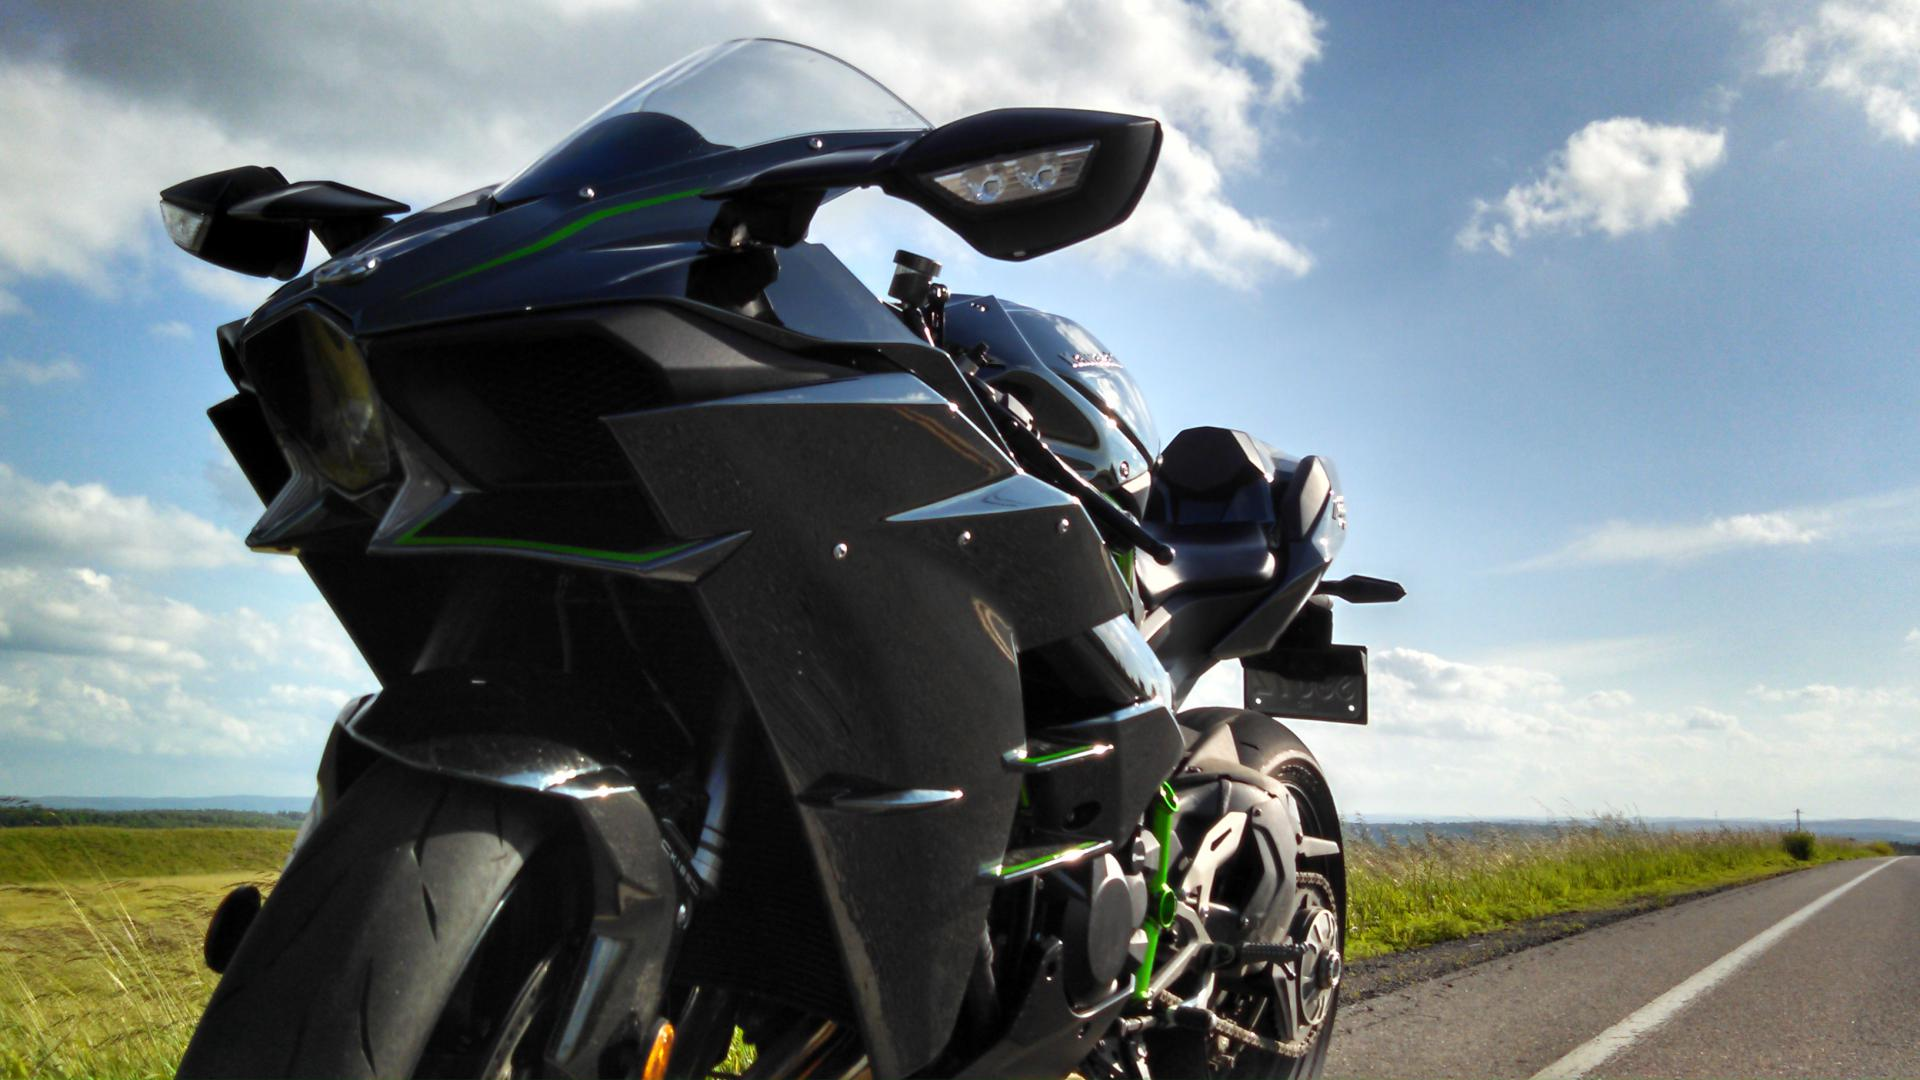 Kawasaki Ninja H2r Wallpapers Hd